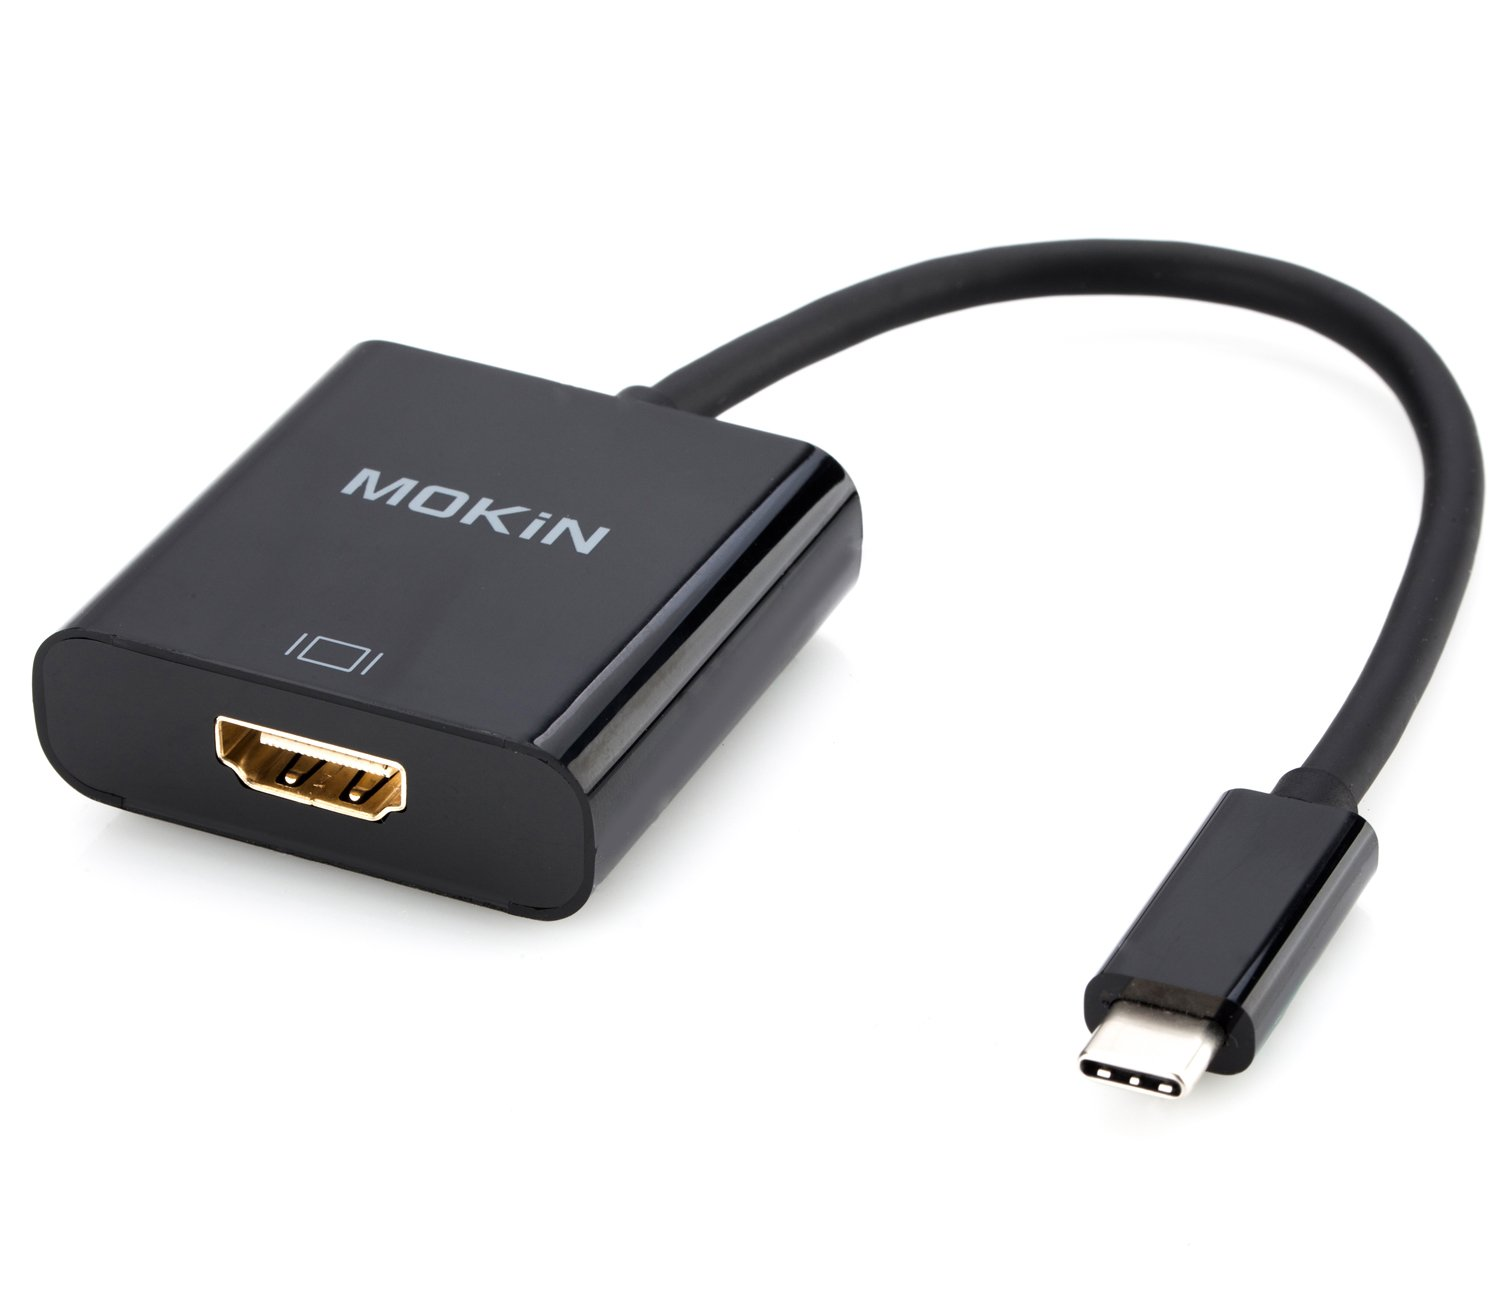 USB C to HDMI Adapter,MOKiN USB C(Type C) To HDMI Adapter Cable For Macbook,Chromebook Pixel,Dell XPS 12/13/15 And More With Gold-Plated HDMI Port,Sup (USB C TO HDMI)